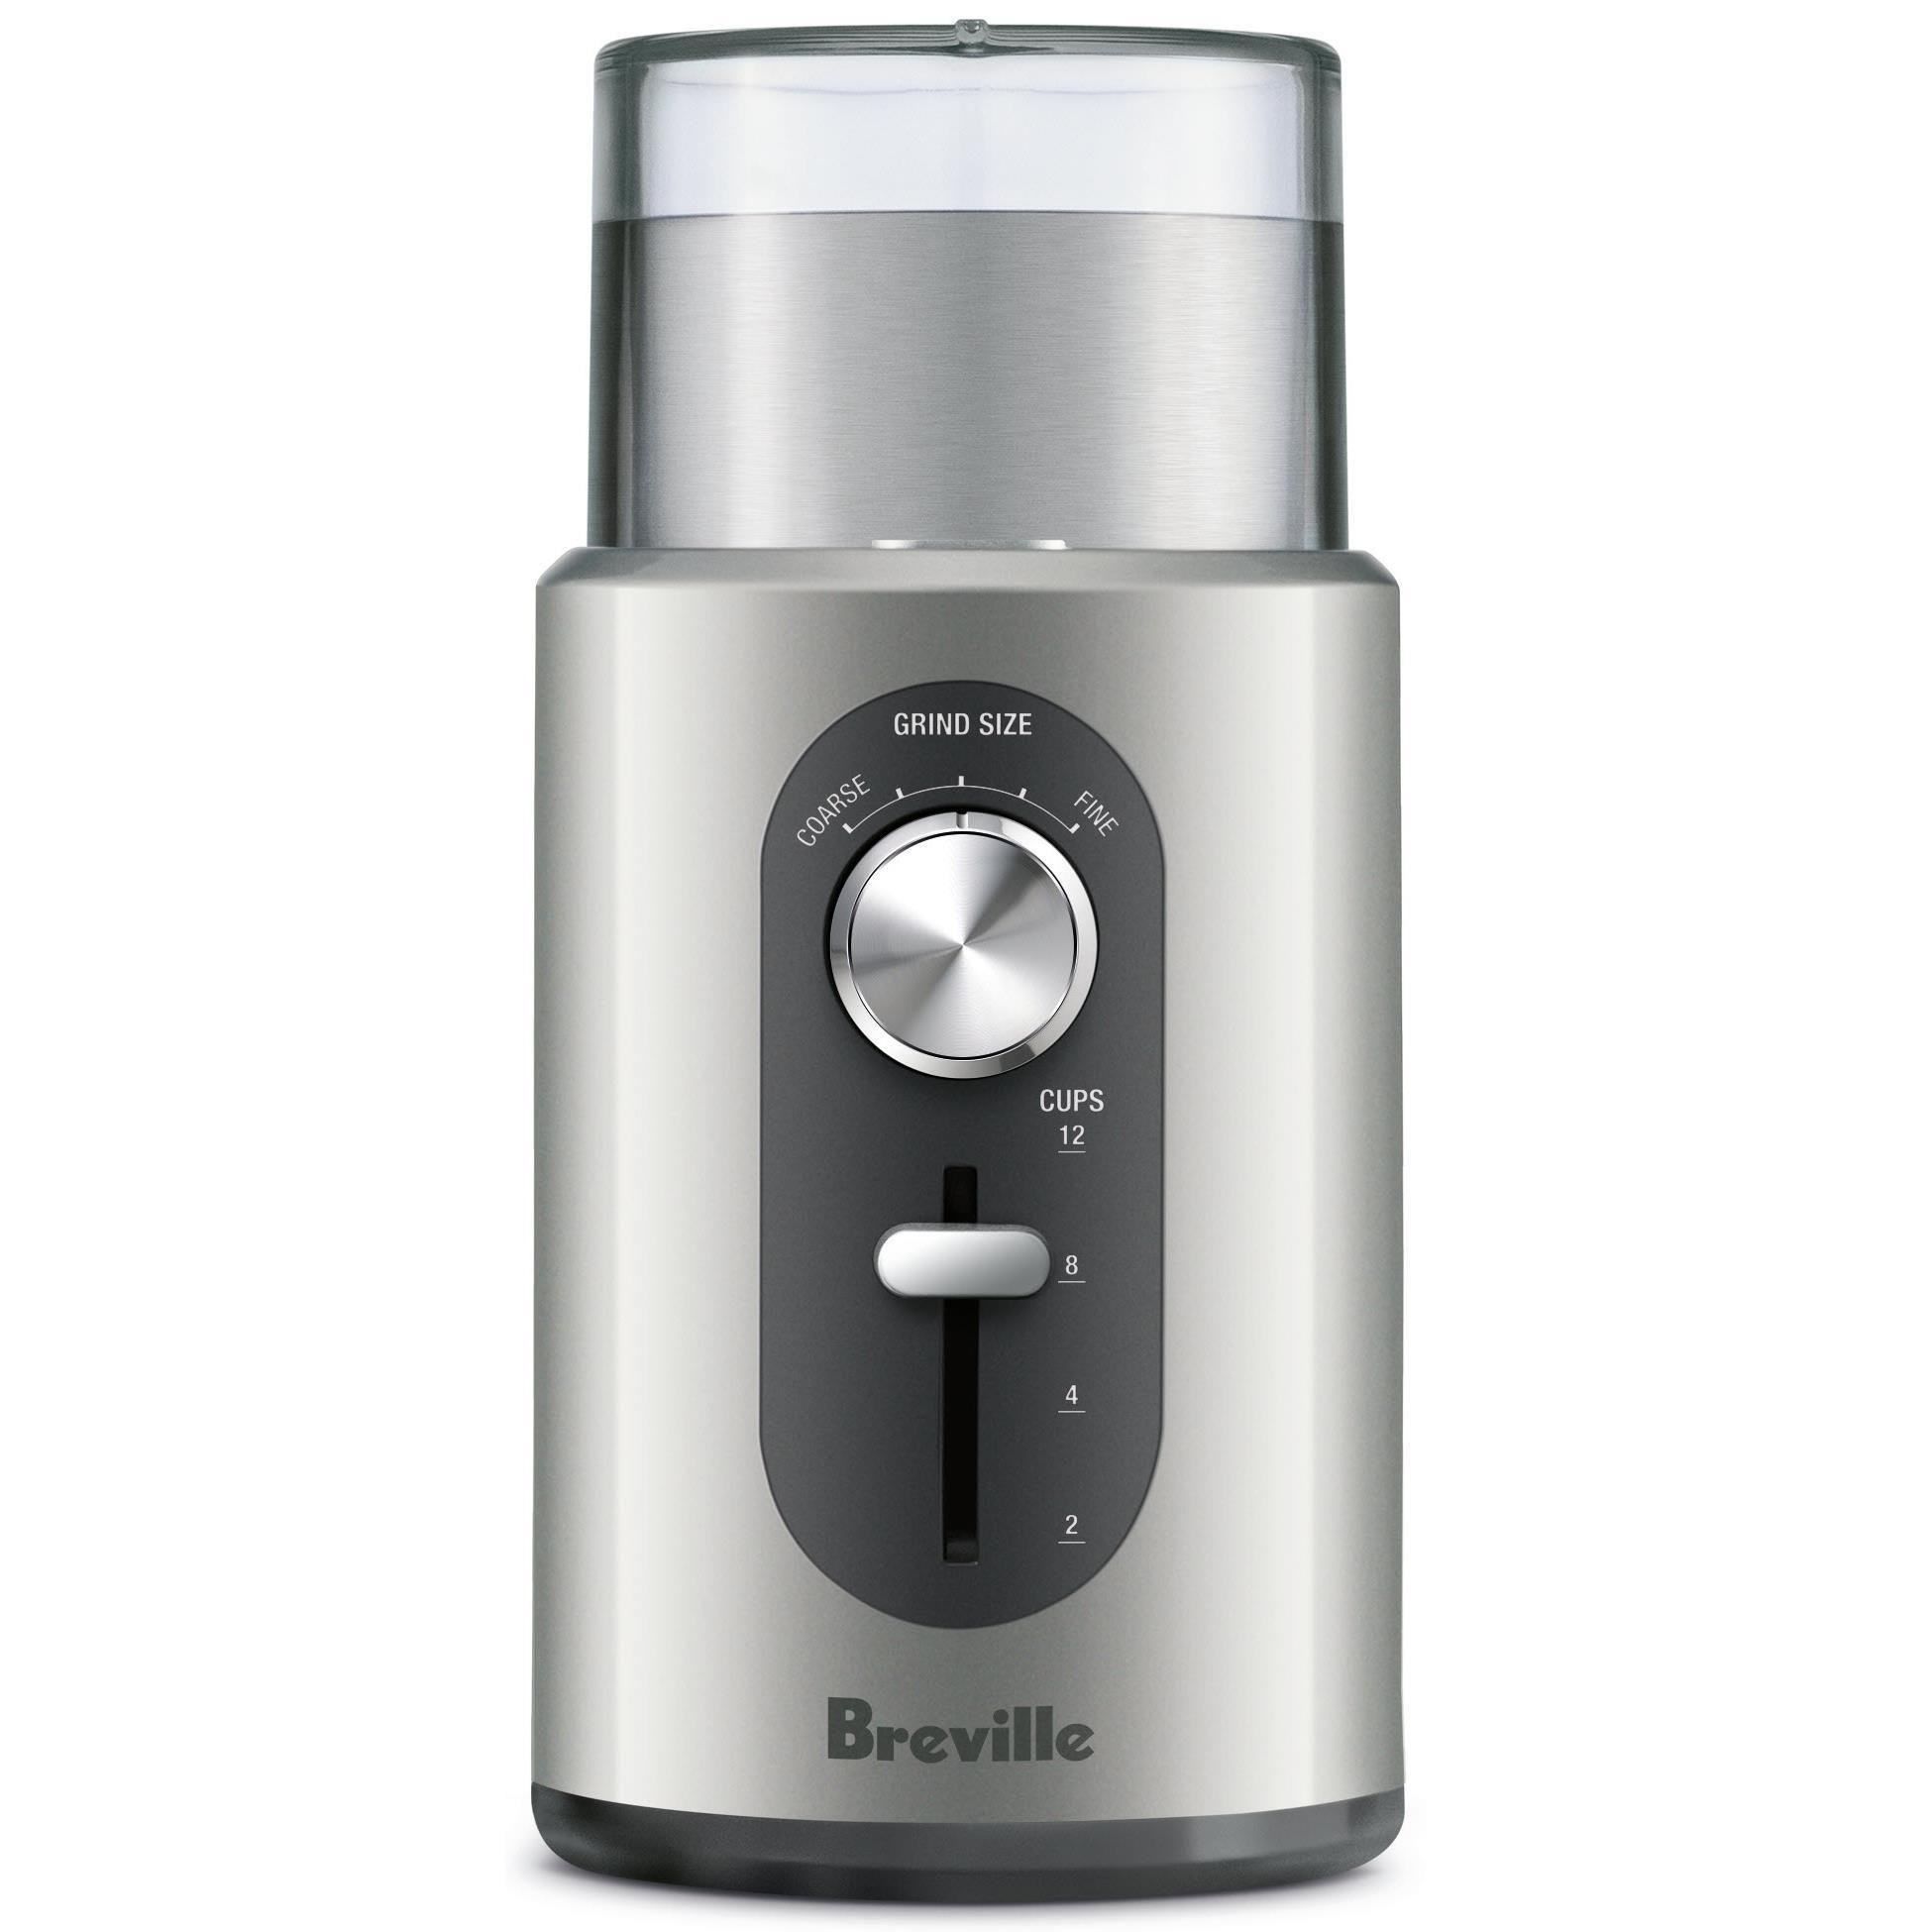 Breville the Coffee & Spice Precise Coffee Grinder